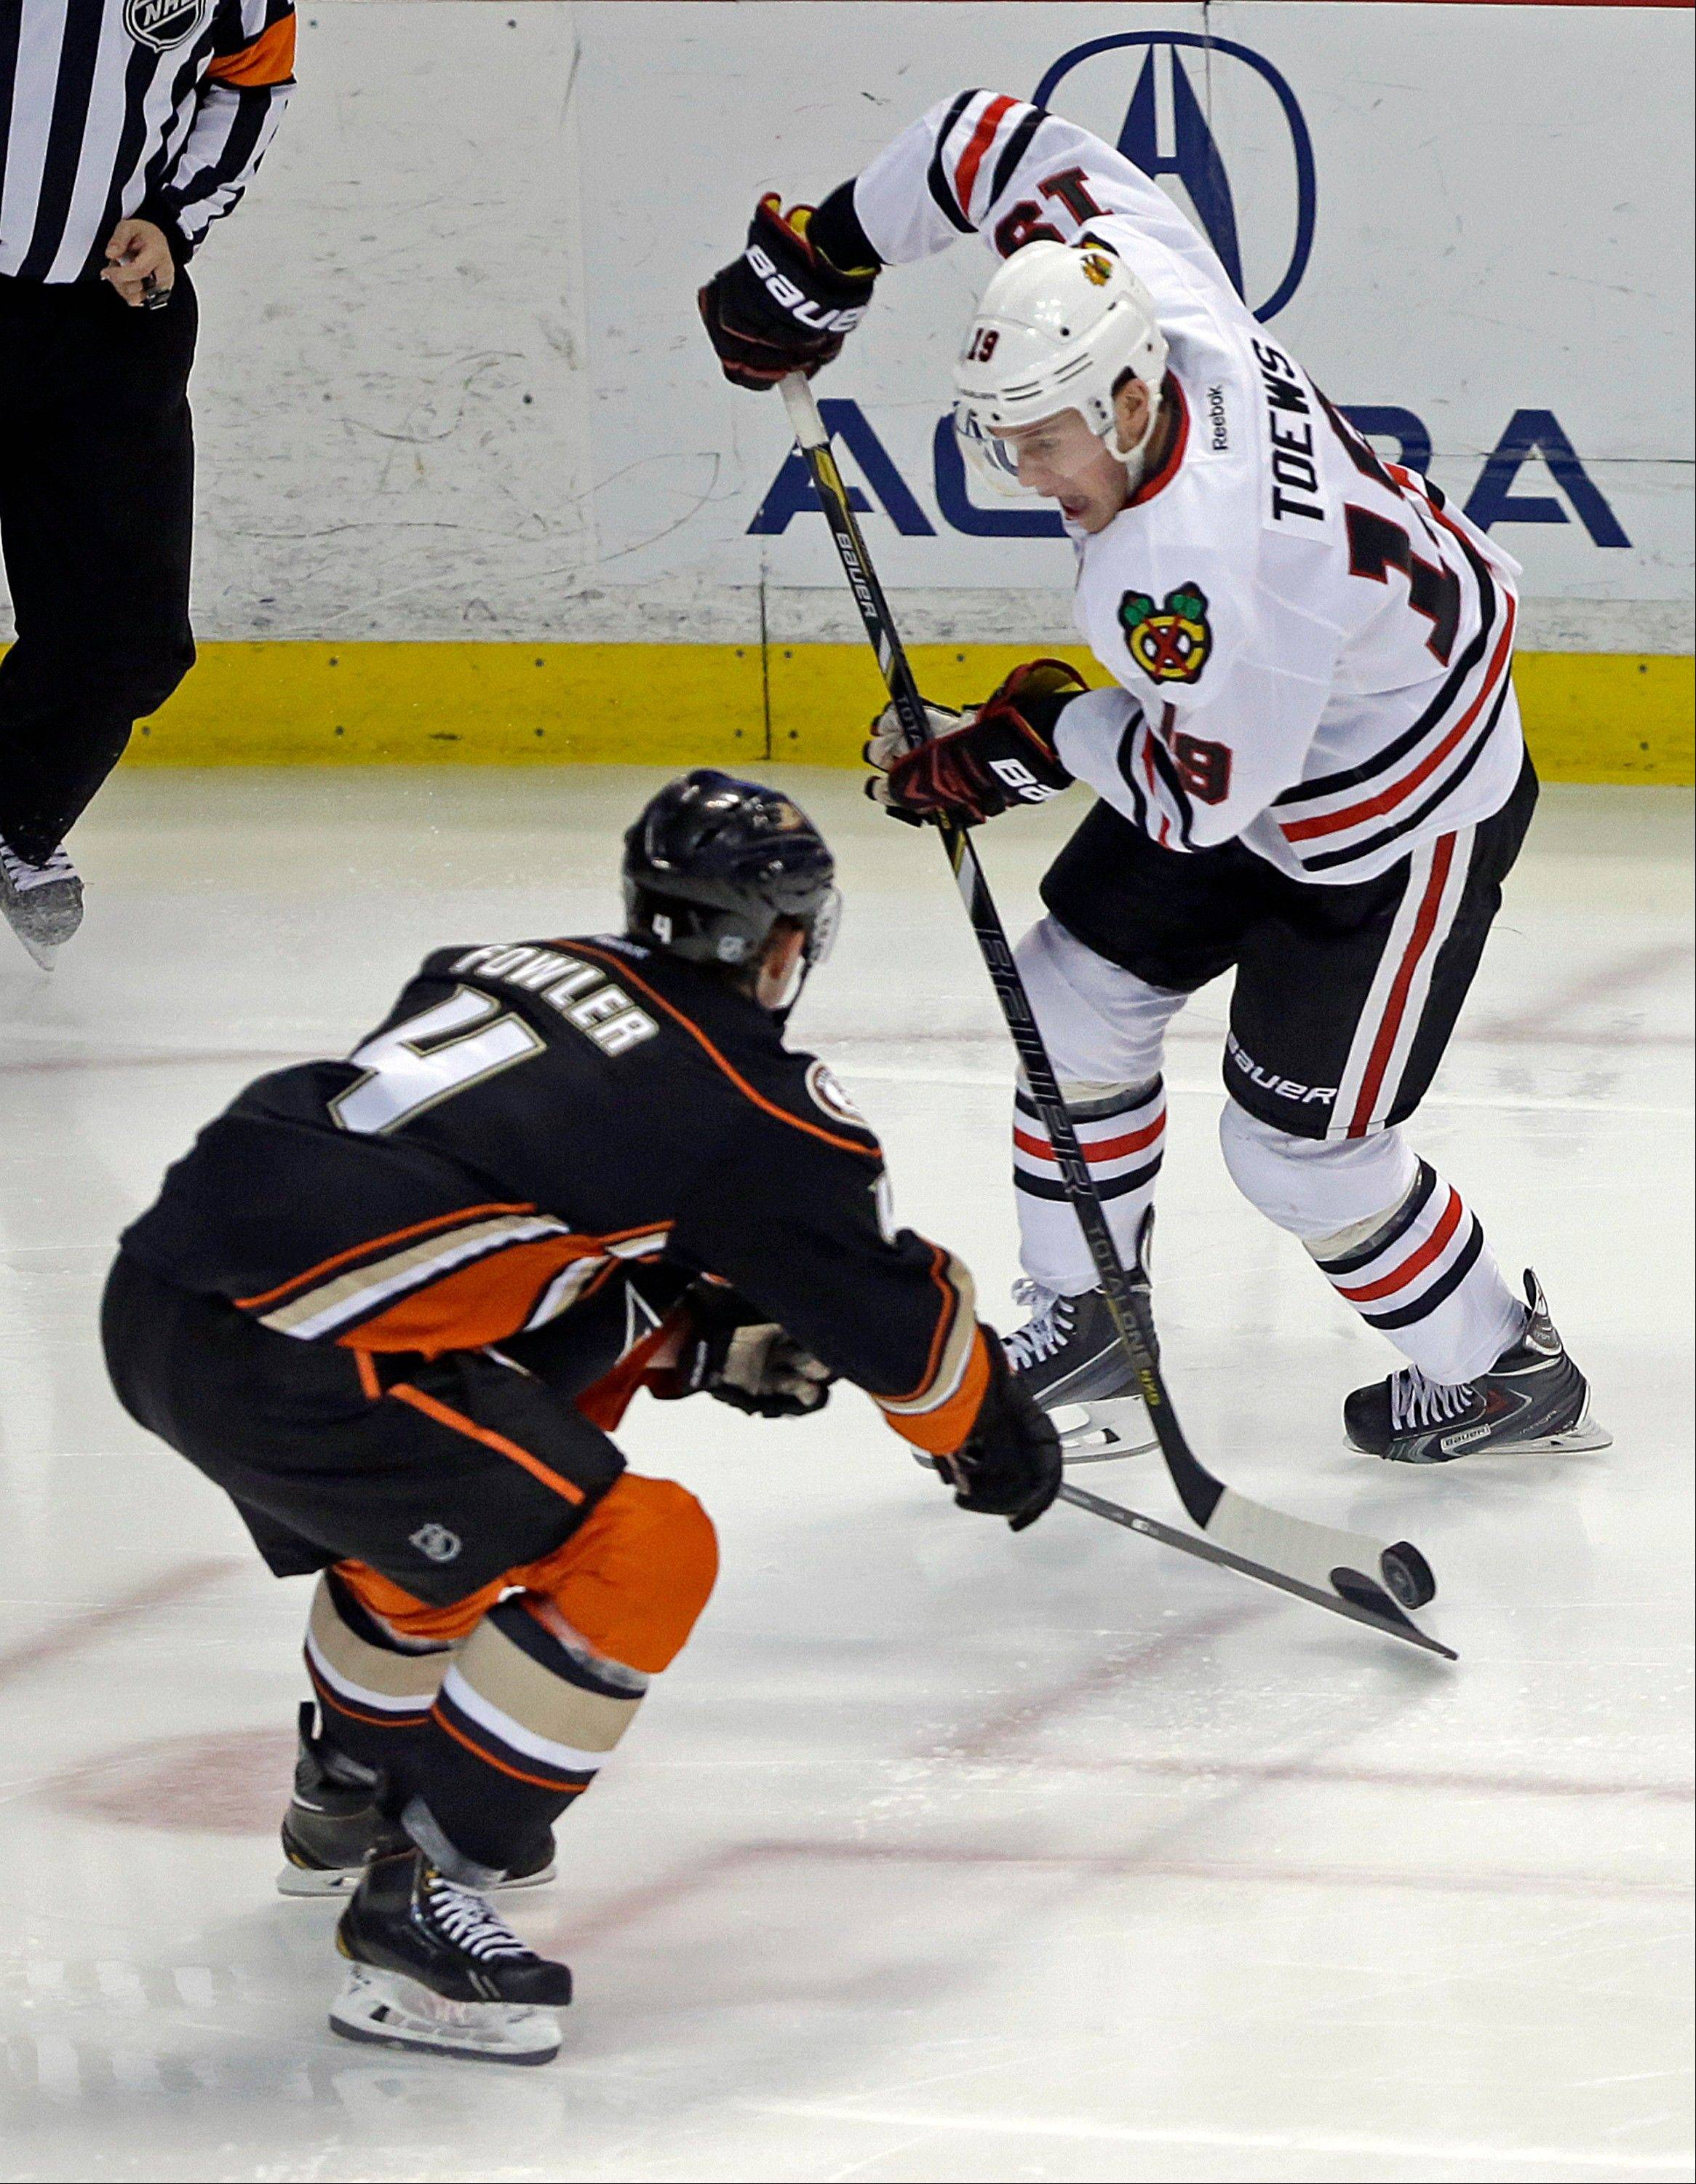 Chicago Blackhawks center Jonathan Toews (19) and Anaheim Ducks defenseman Cam Fowler (4) tangle in the third period of an NHL hockey game in Anaheim, Calif., Wednesday, Feb. 5, 2014. The Blackhawks won, 2-0. (AP Photo/Reed Saxon)